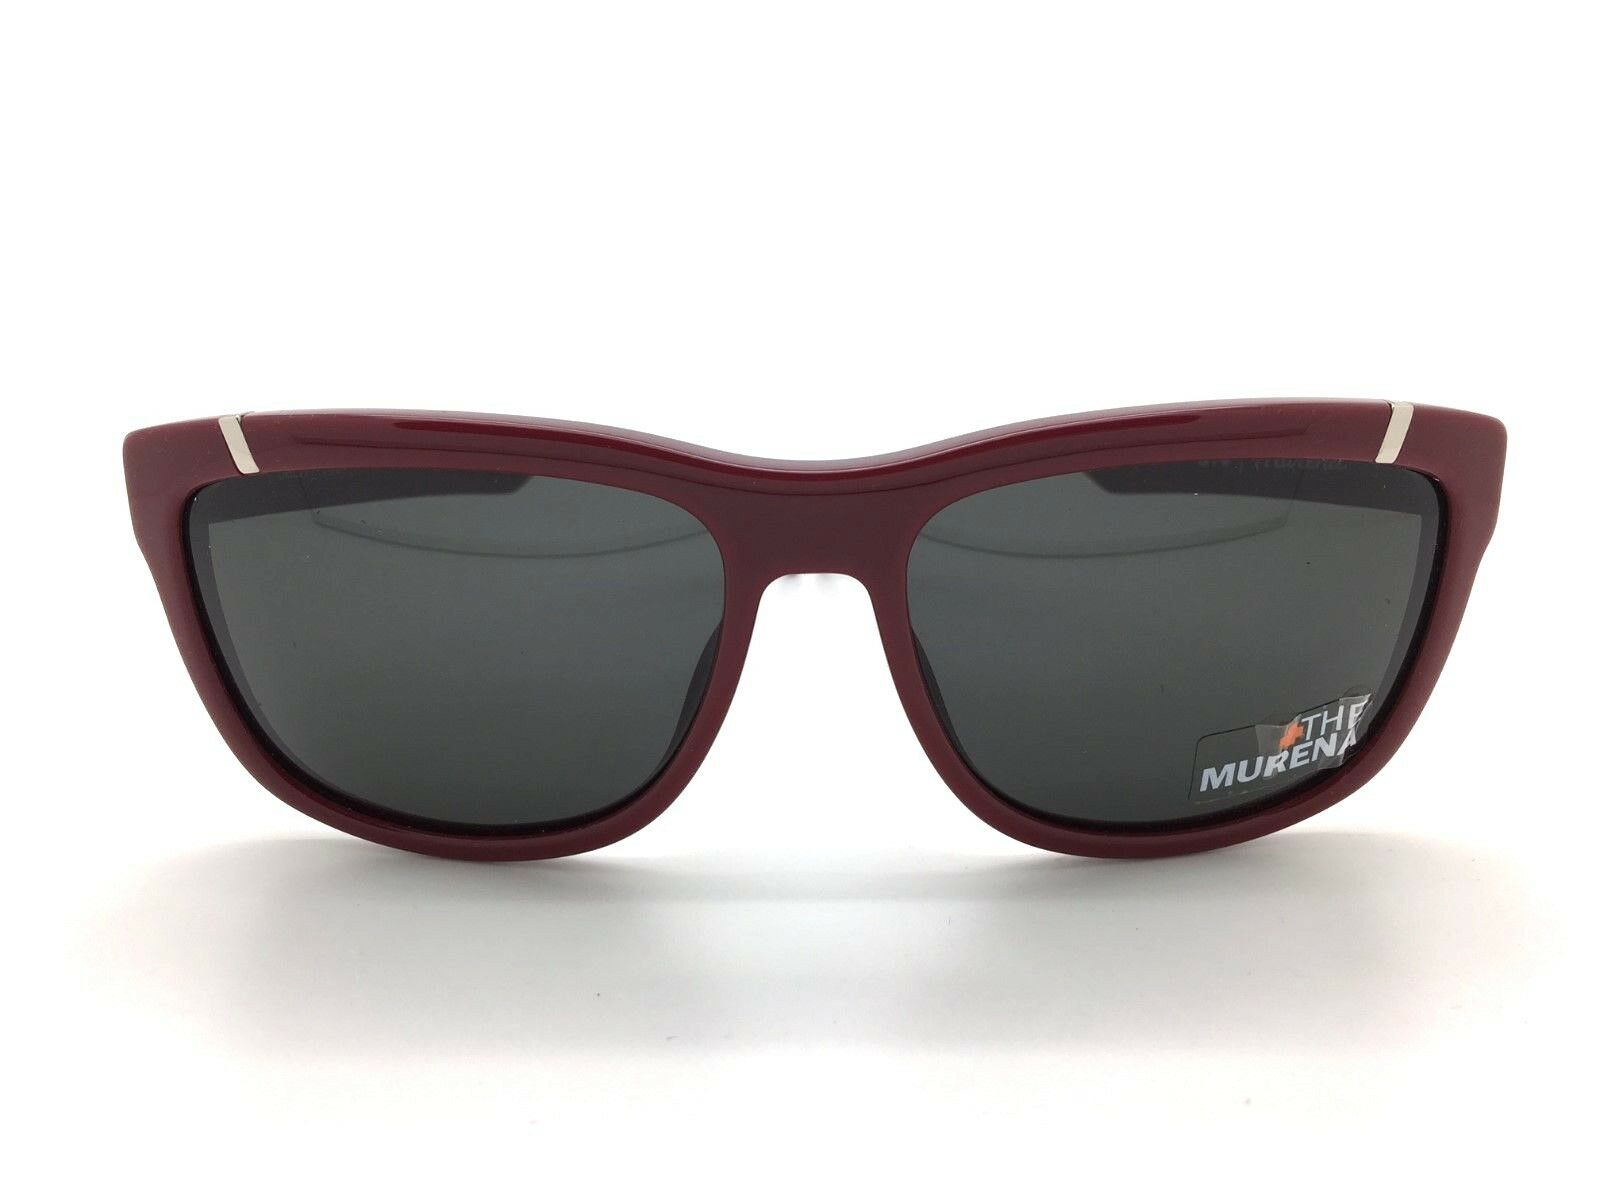 SPY+ Optic Murena Sunglasses 671012154129 Burgundy Frame with  Grey Lens  team promotions